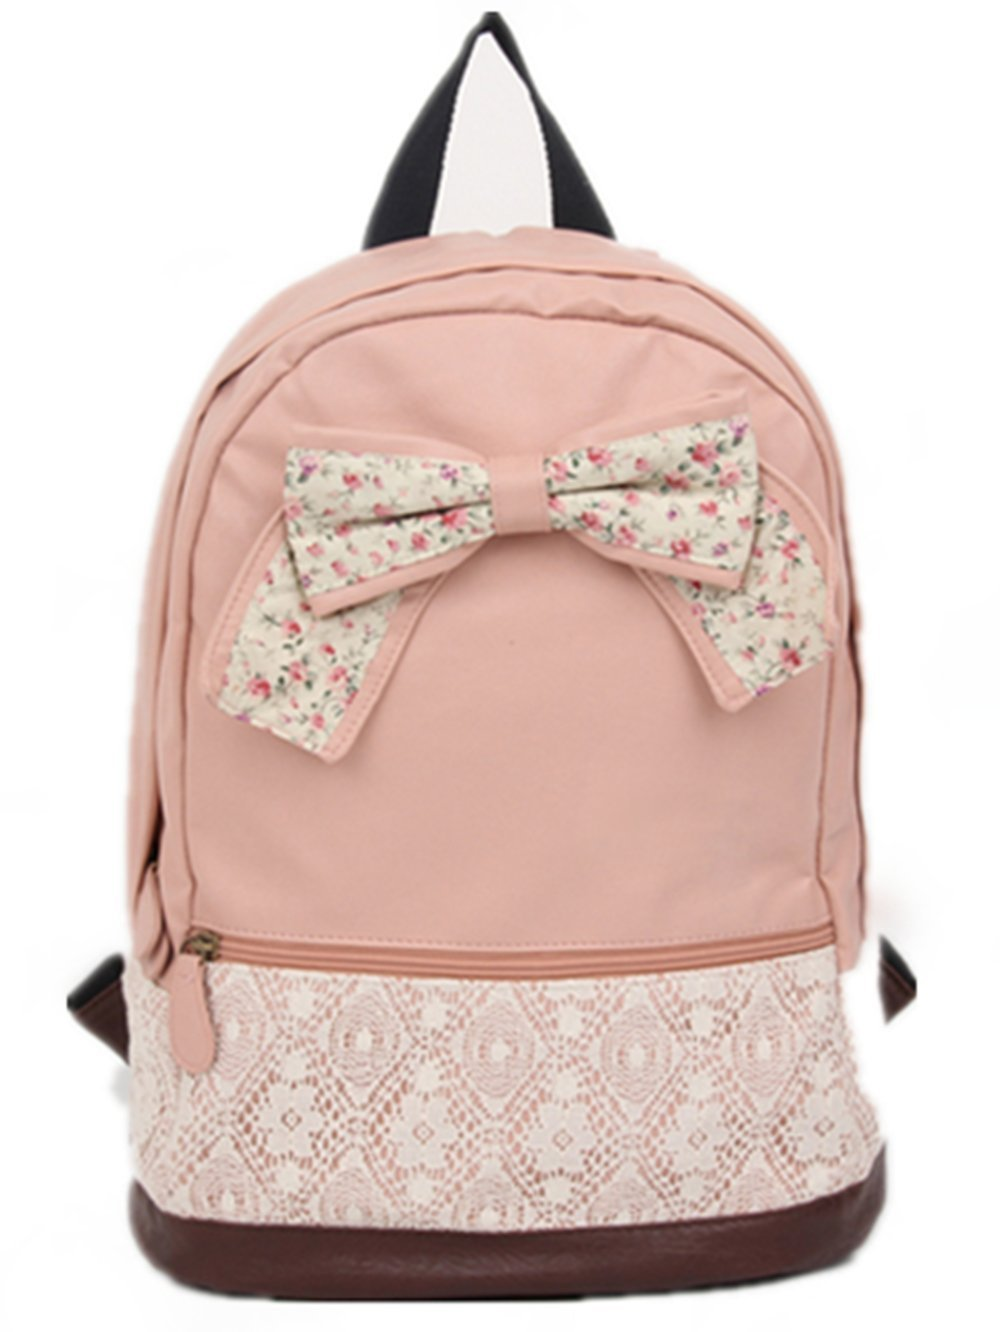 1d813ee12d0b Girls Cute Backpacks - Backpakc Fam